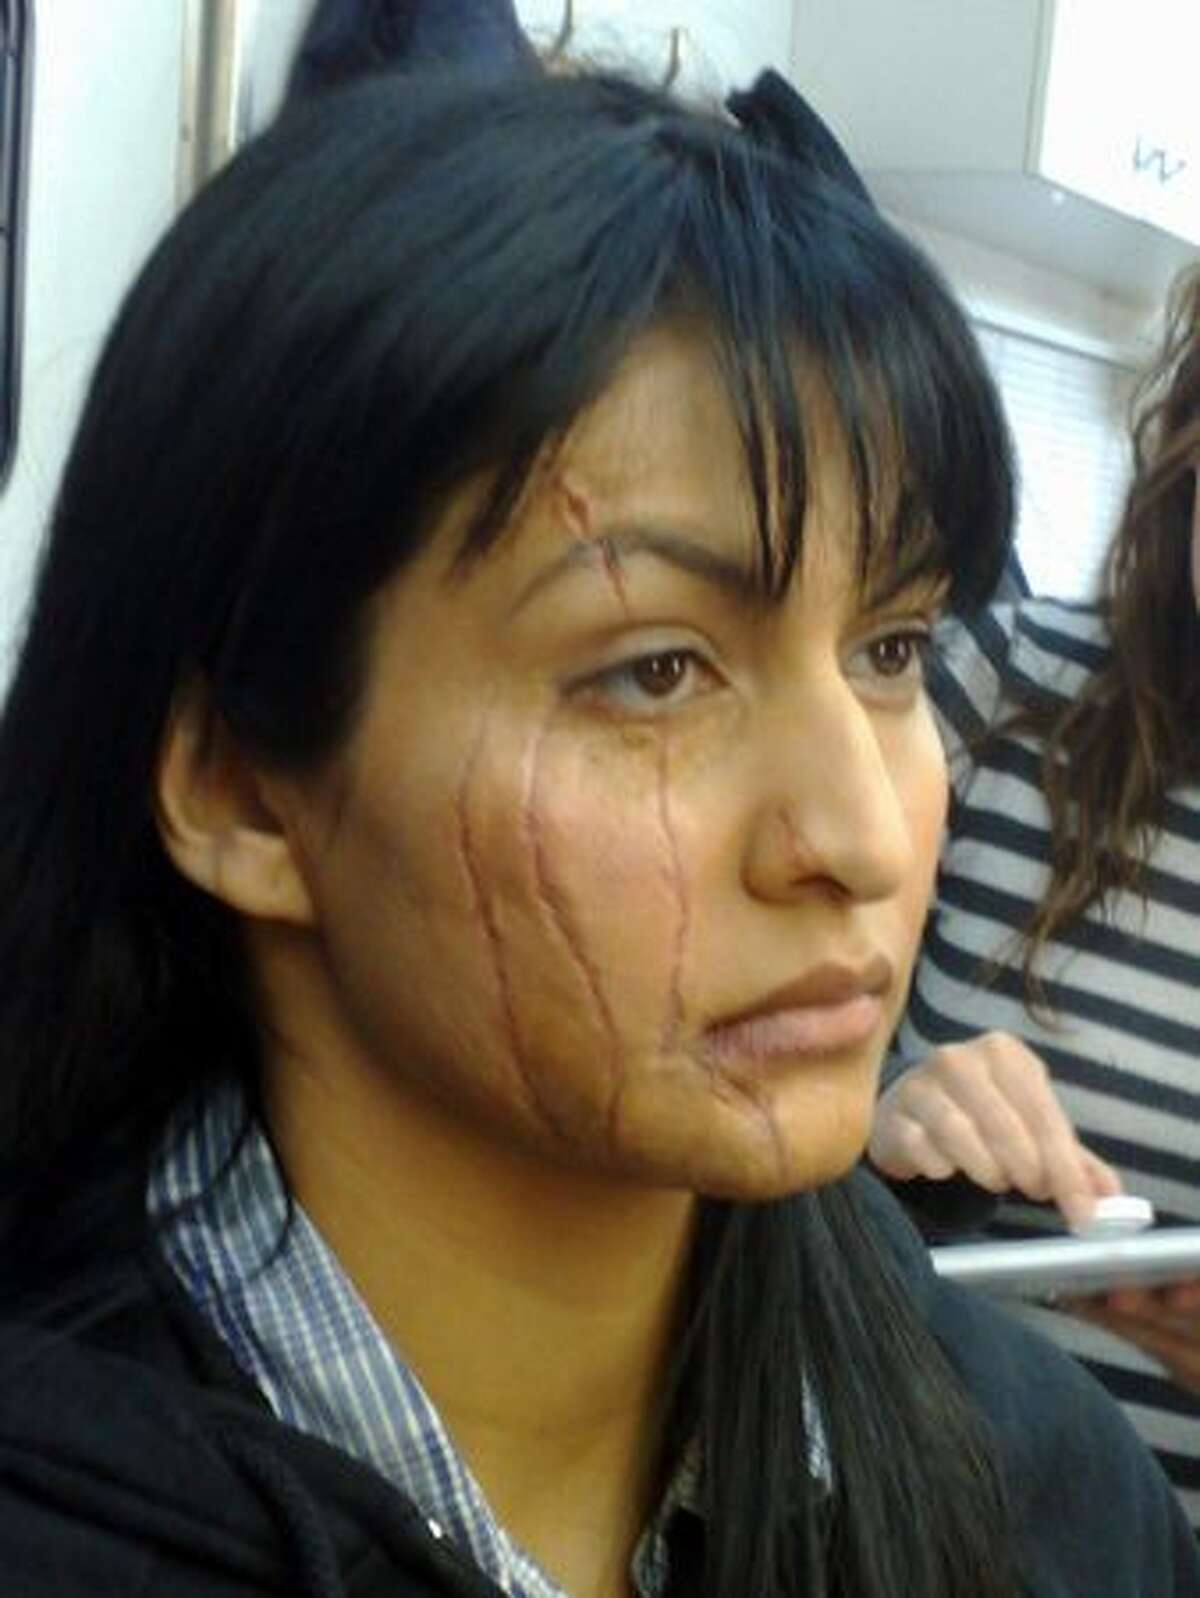 A woman wears makeup created by character effects company Masters FX created for